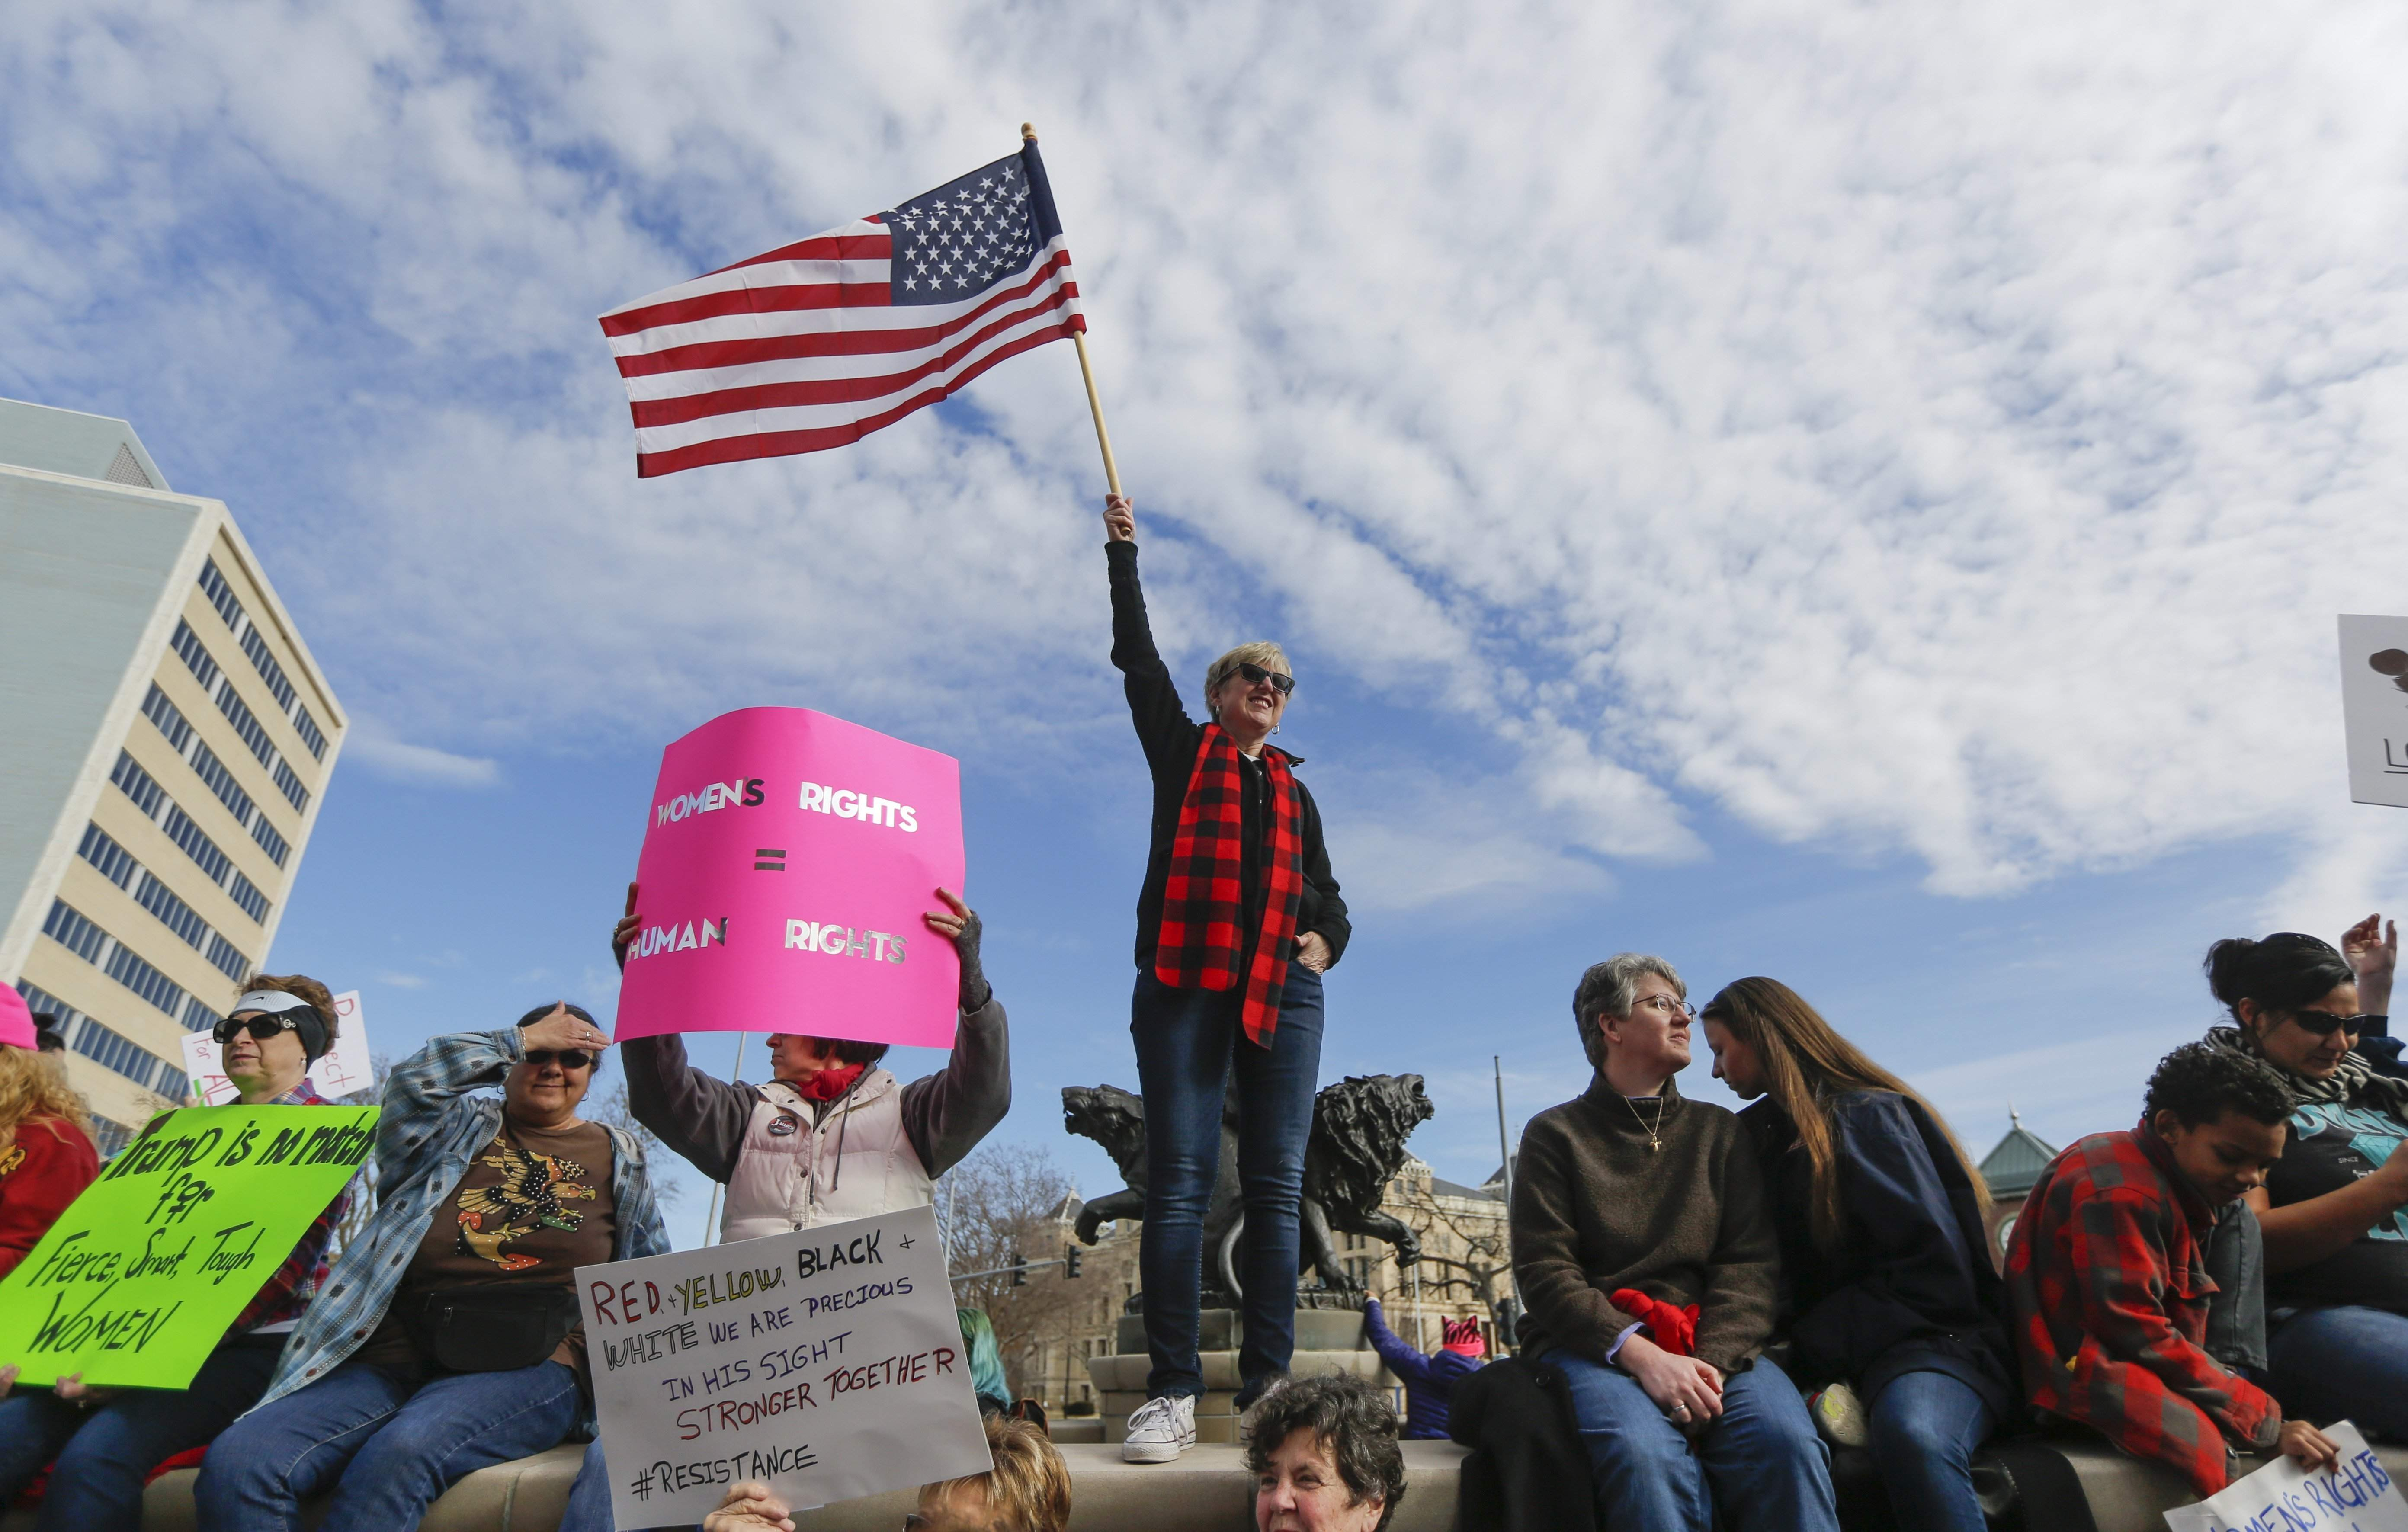 Several thousand people turned out at the Keeper of the Plains on Saturday, Jan. 21, 2017, to take part in the Women's March in Wichita, Kan. Similar events were held across the globe, with an estimated 500,000 turning out in Washington, DC. THE ASSOCIATED PRESS